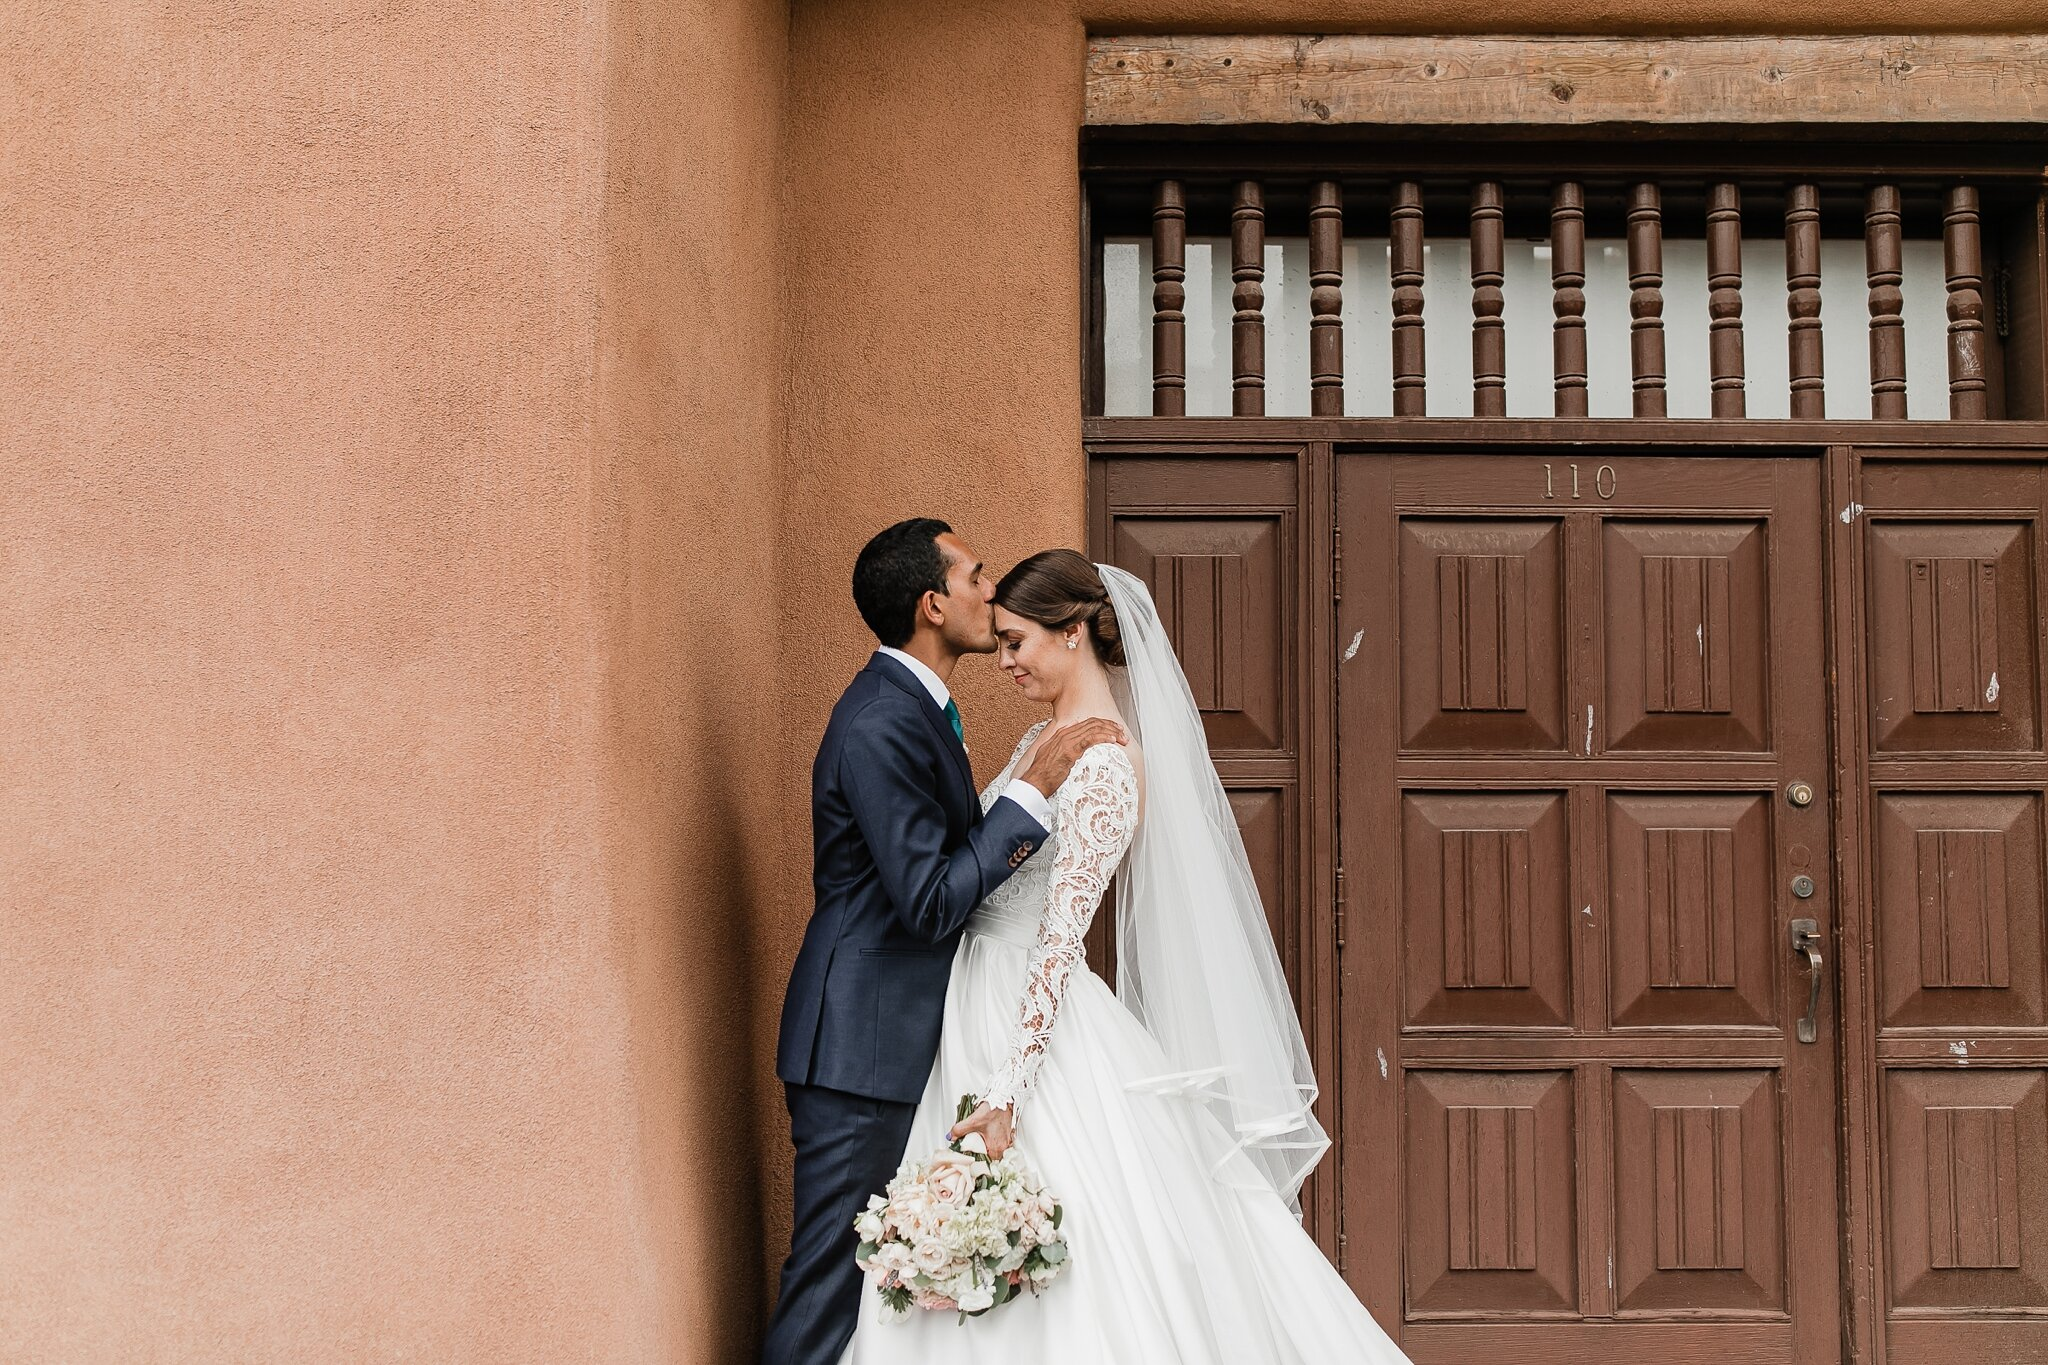 Alicia+lucia+photography+-+albuquerque+wedding+photographer+-+santa+fe+wedding+photography+-+new+mexico+wedding+photographer+-+new+mexico+wedding+-+hindu+wedding+-+catholic+wedding+-+multicultural+wedding+-+santa+fe+wedding_0078.jpg